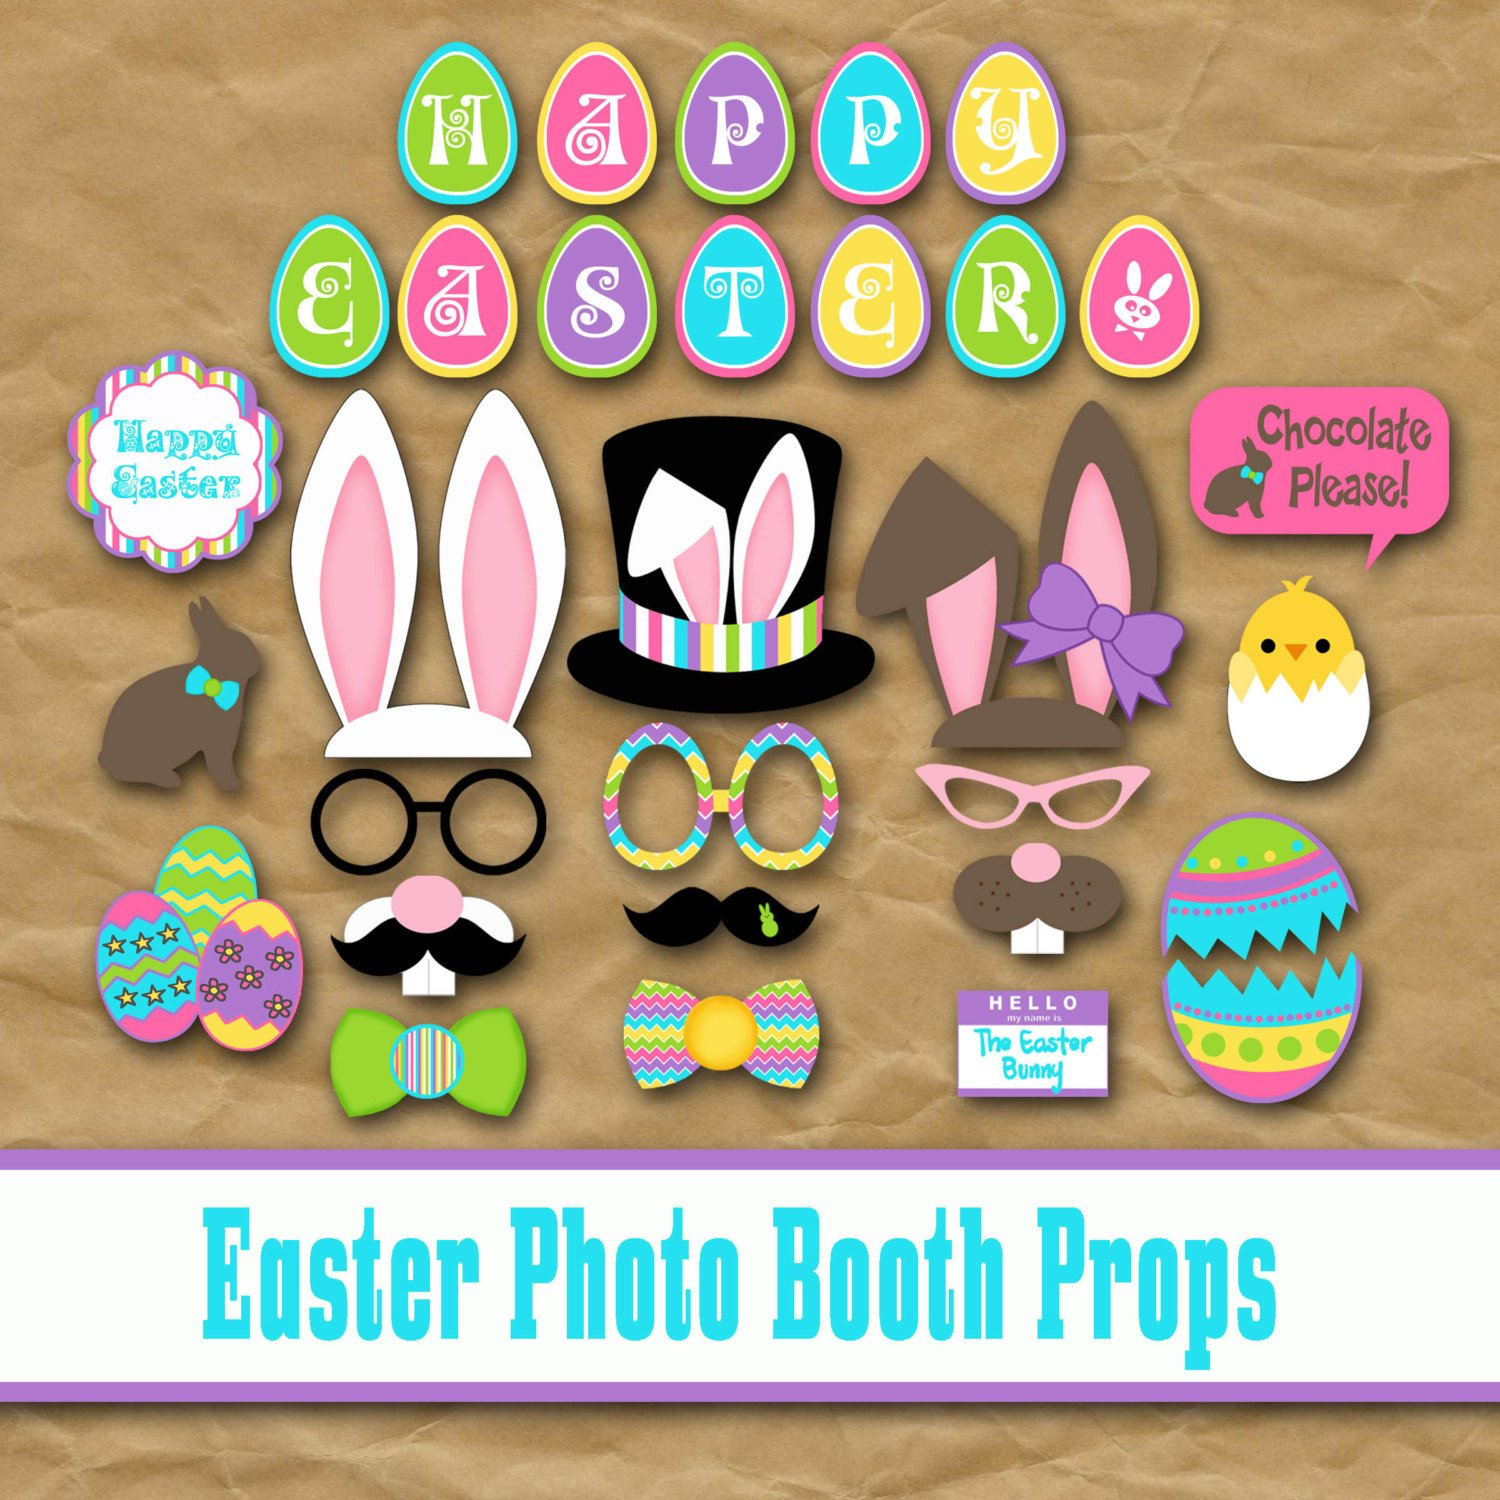 Printable Easter Photo Booth Props